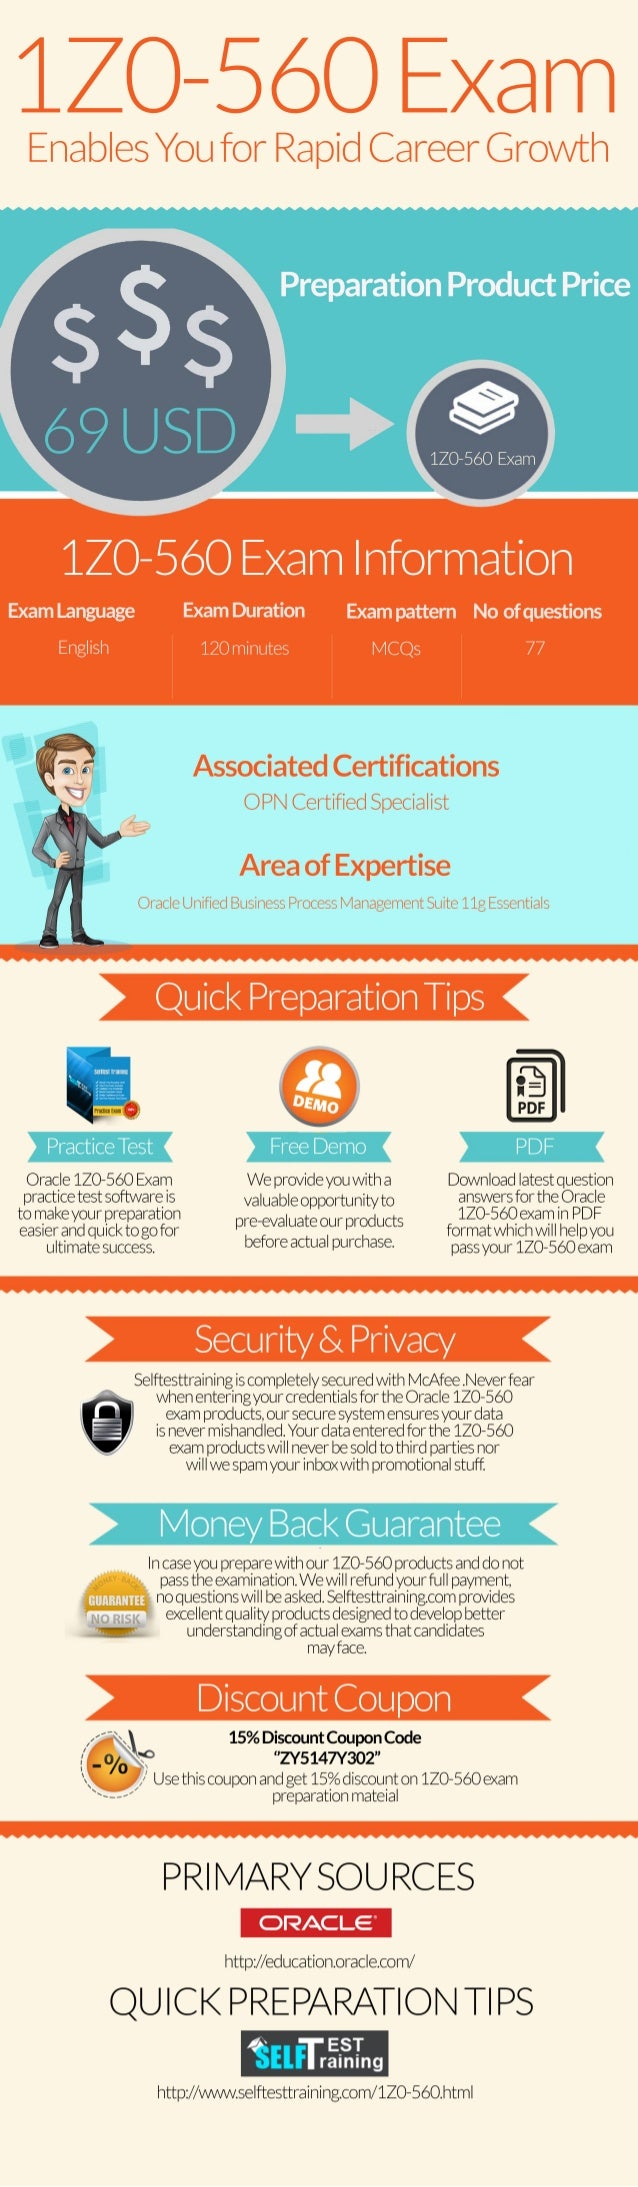 Latest 1Z0-560 Exam Questions & Practice Test [infographic]